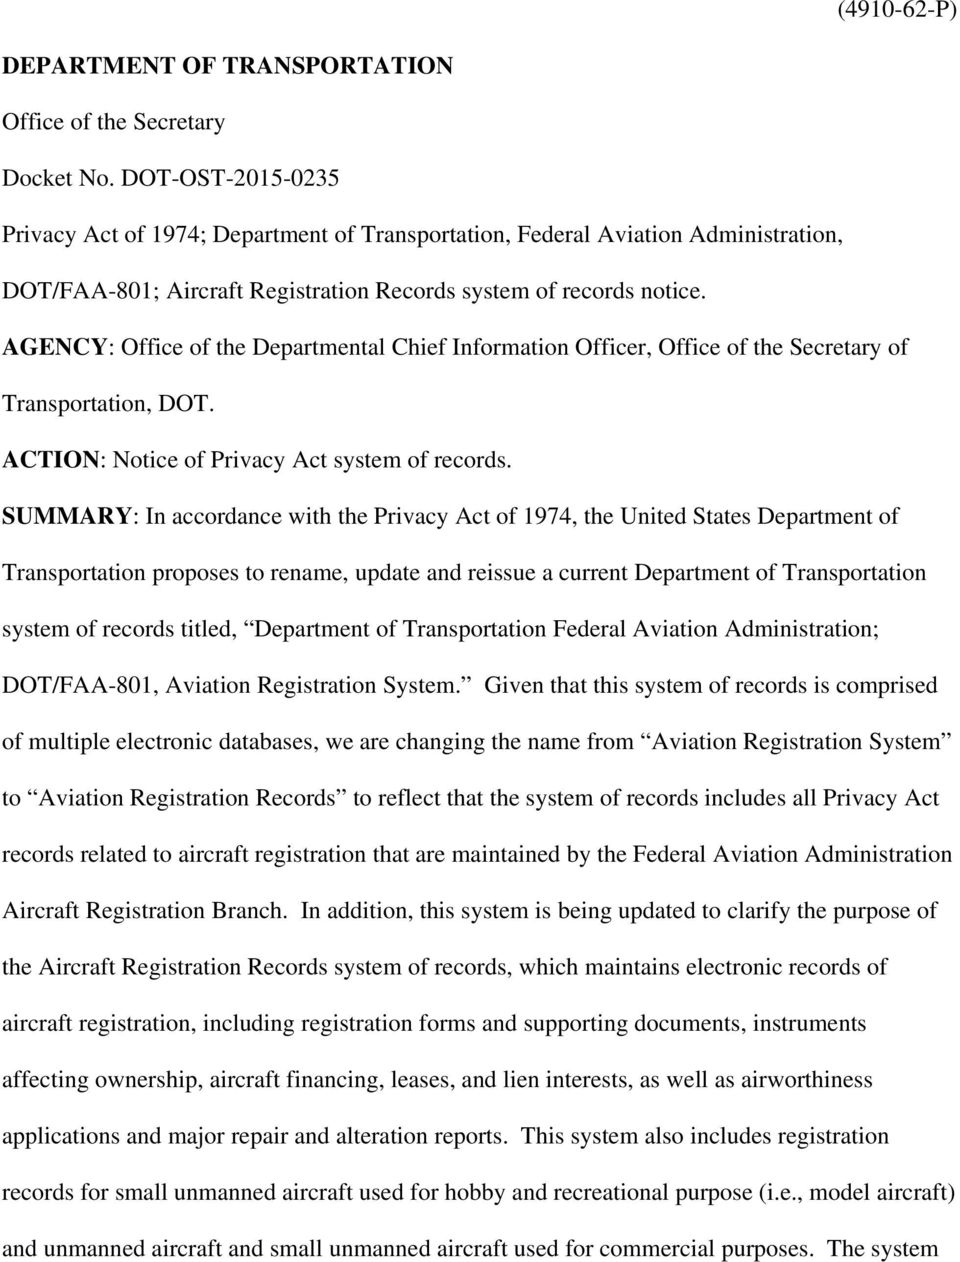 AGENCY: Office of the Departmental Chief Information Officer, Office of the Secretary of Transportation, DOT. ACTION: Notice of Privacy Act system of records.